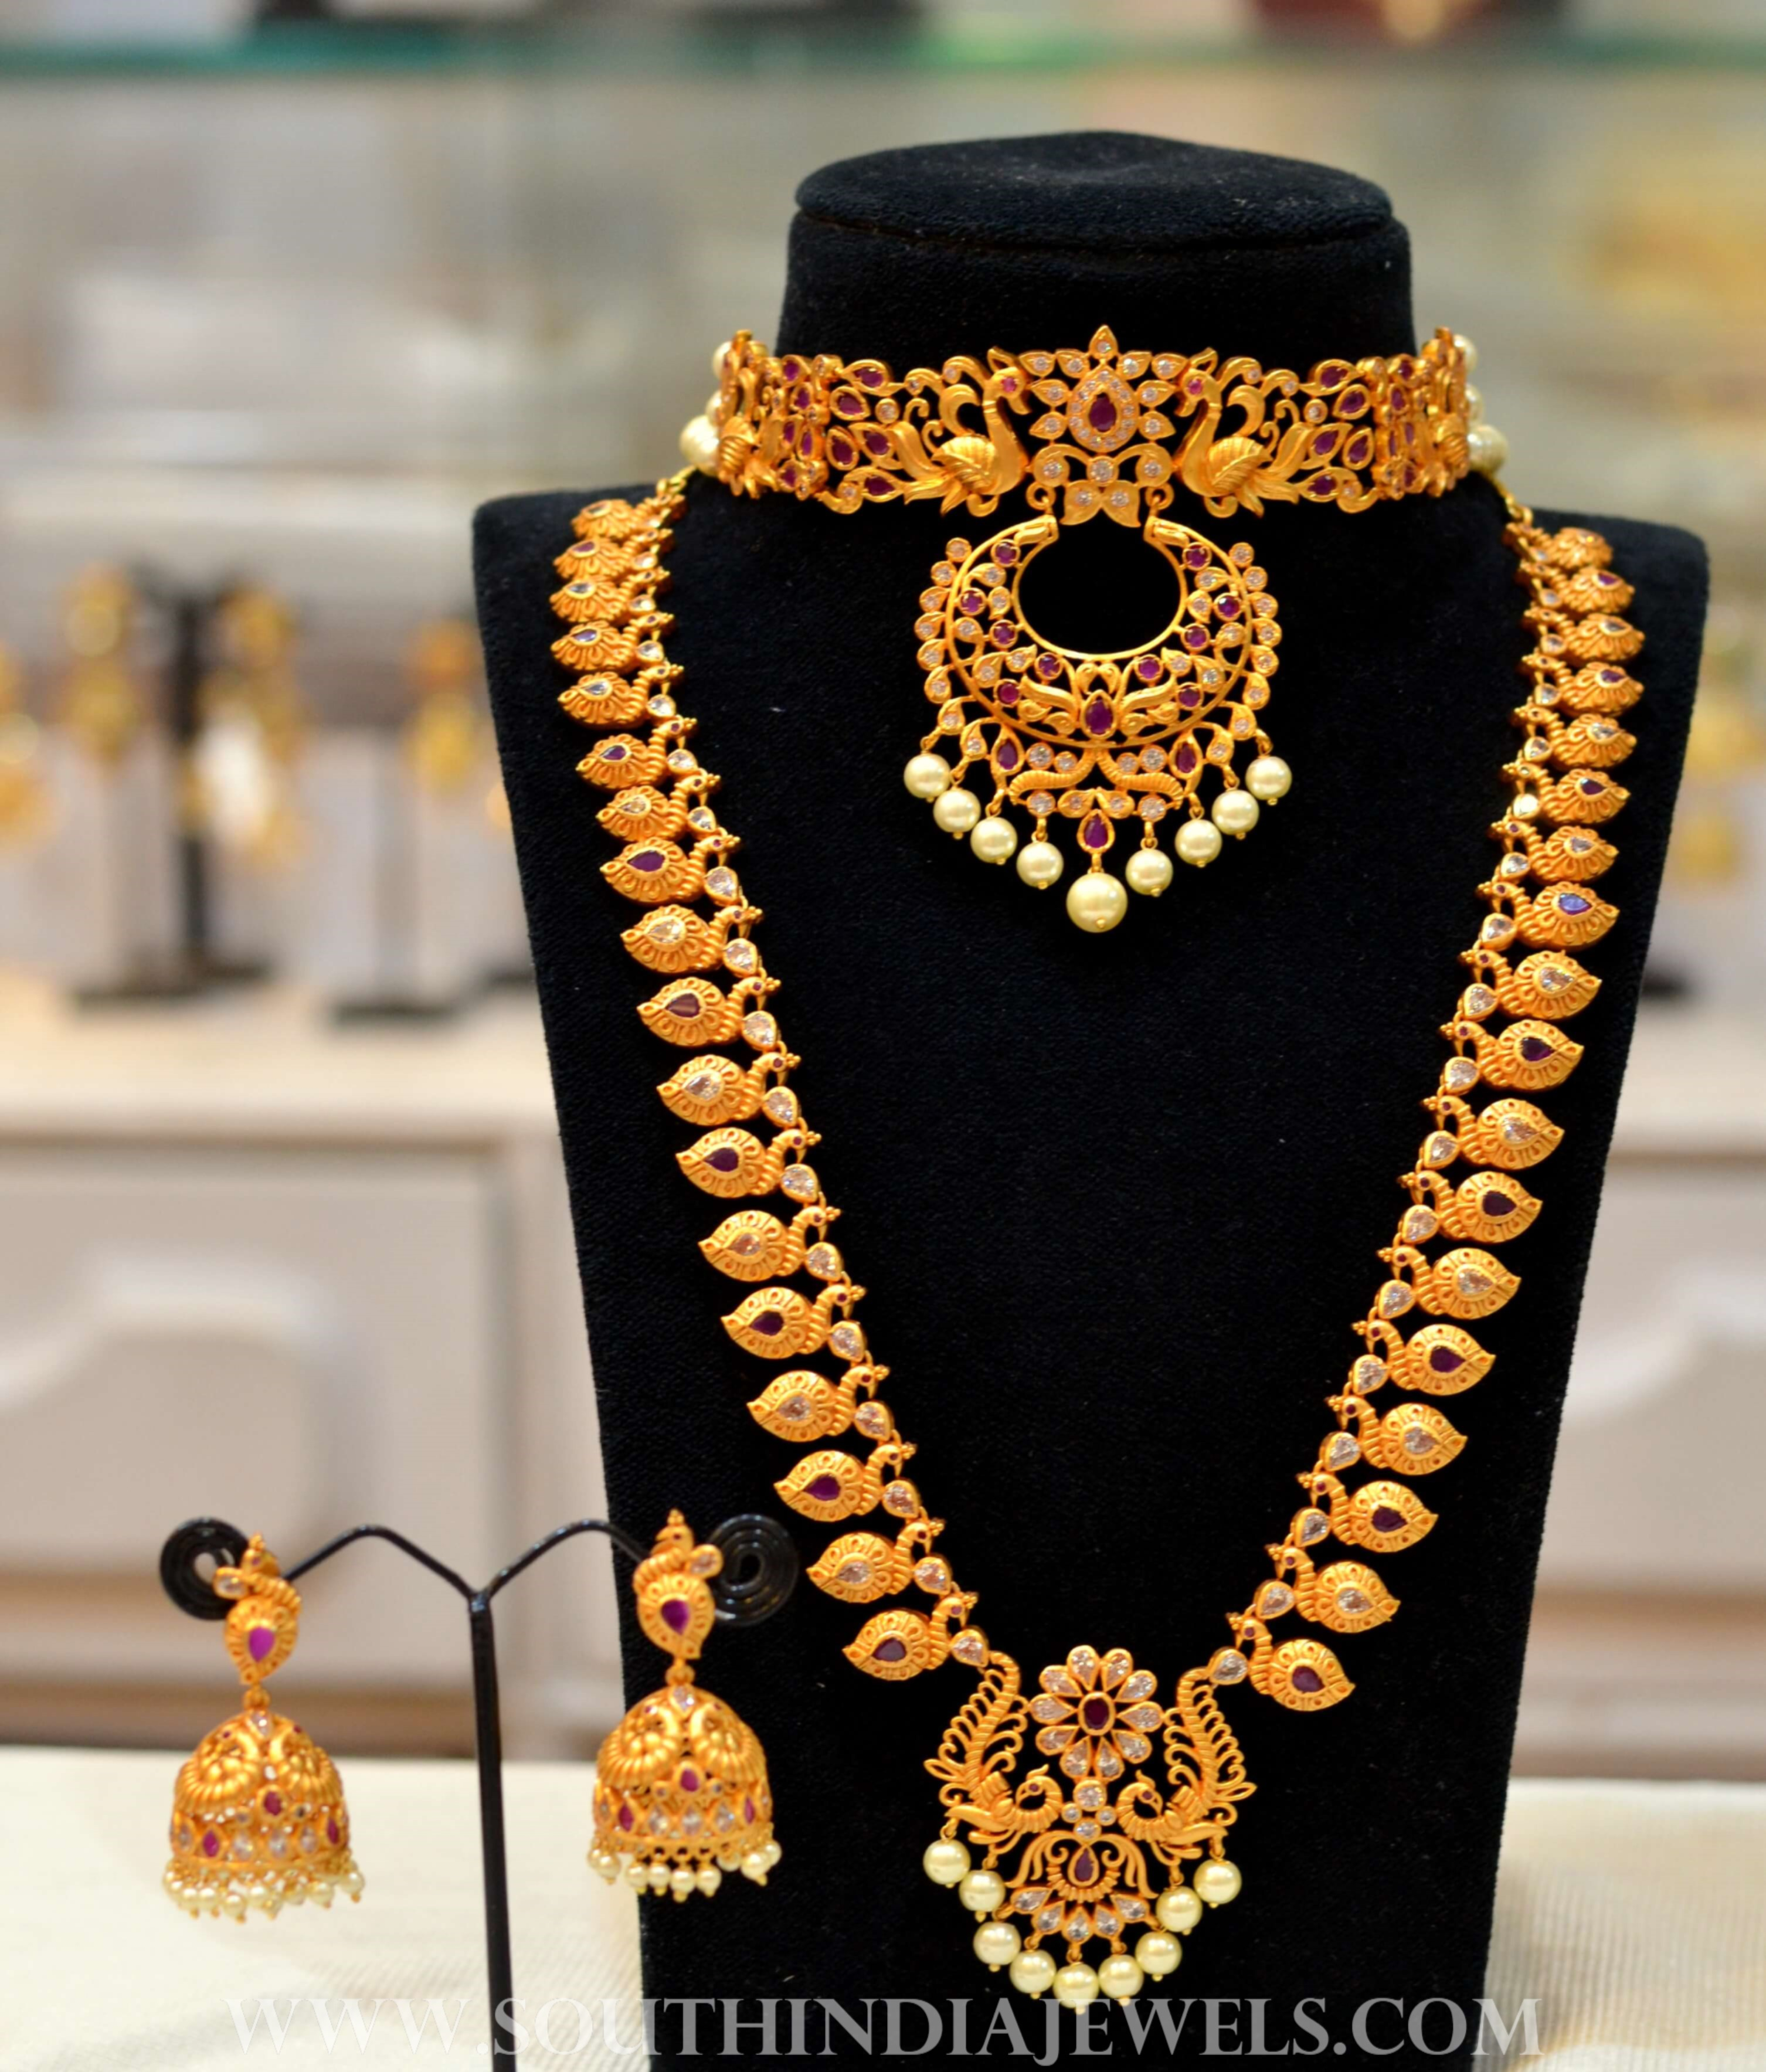 25 Stunning South Indian Jewellery Designs From Our Catalogue South India Jewels,Modern Style Granite Kitchen Platform Design Images